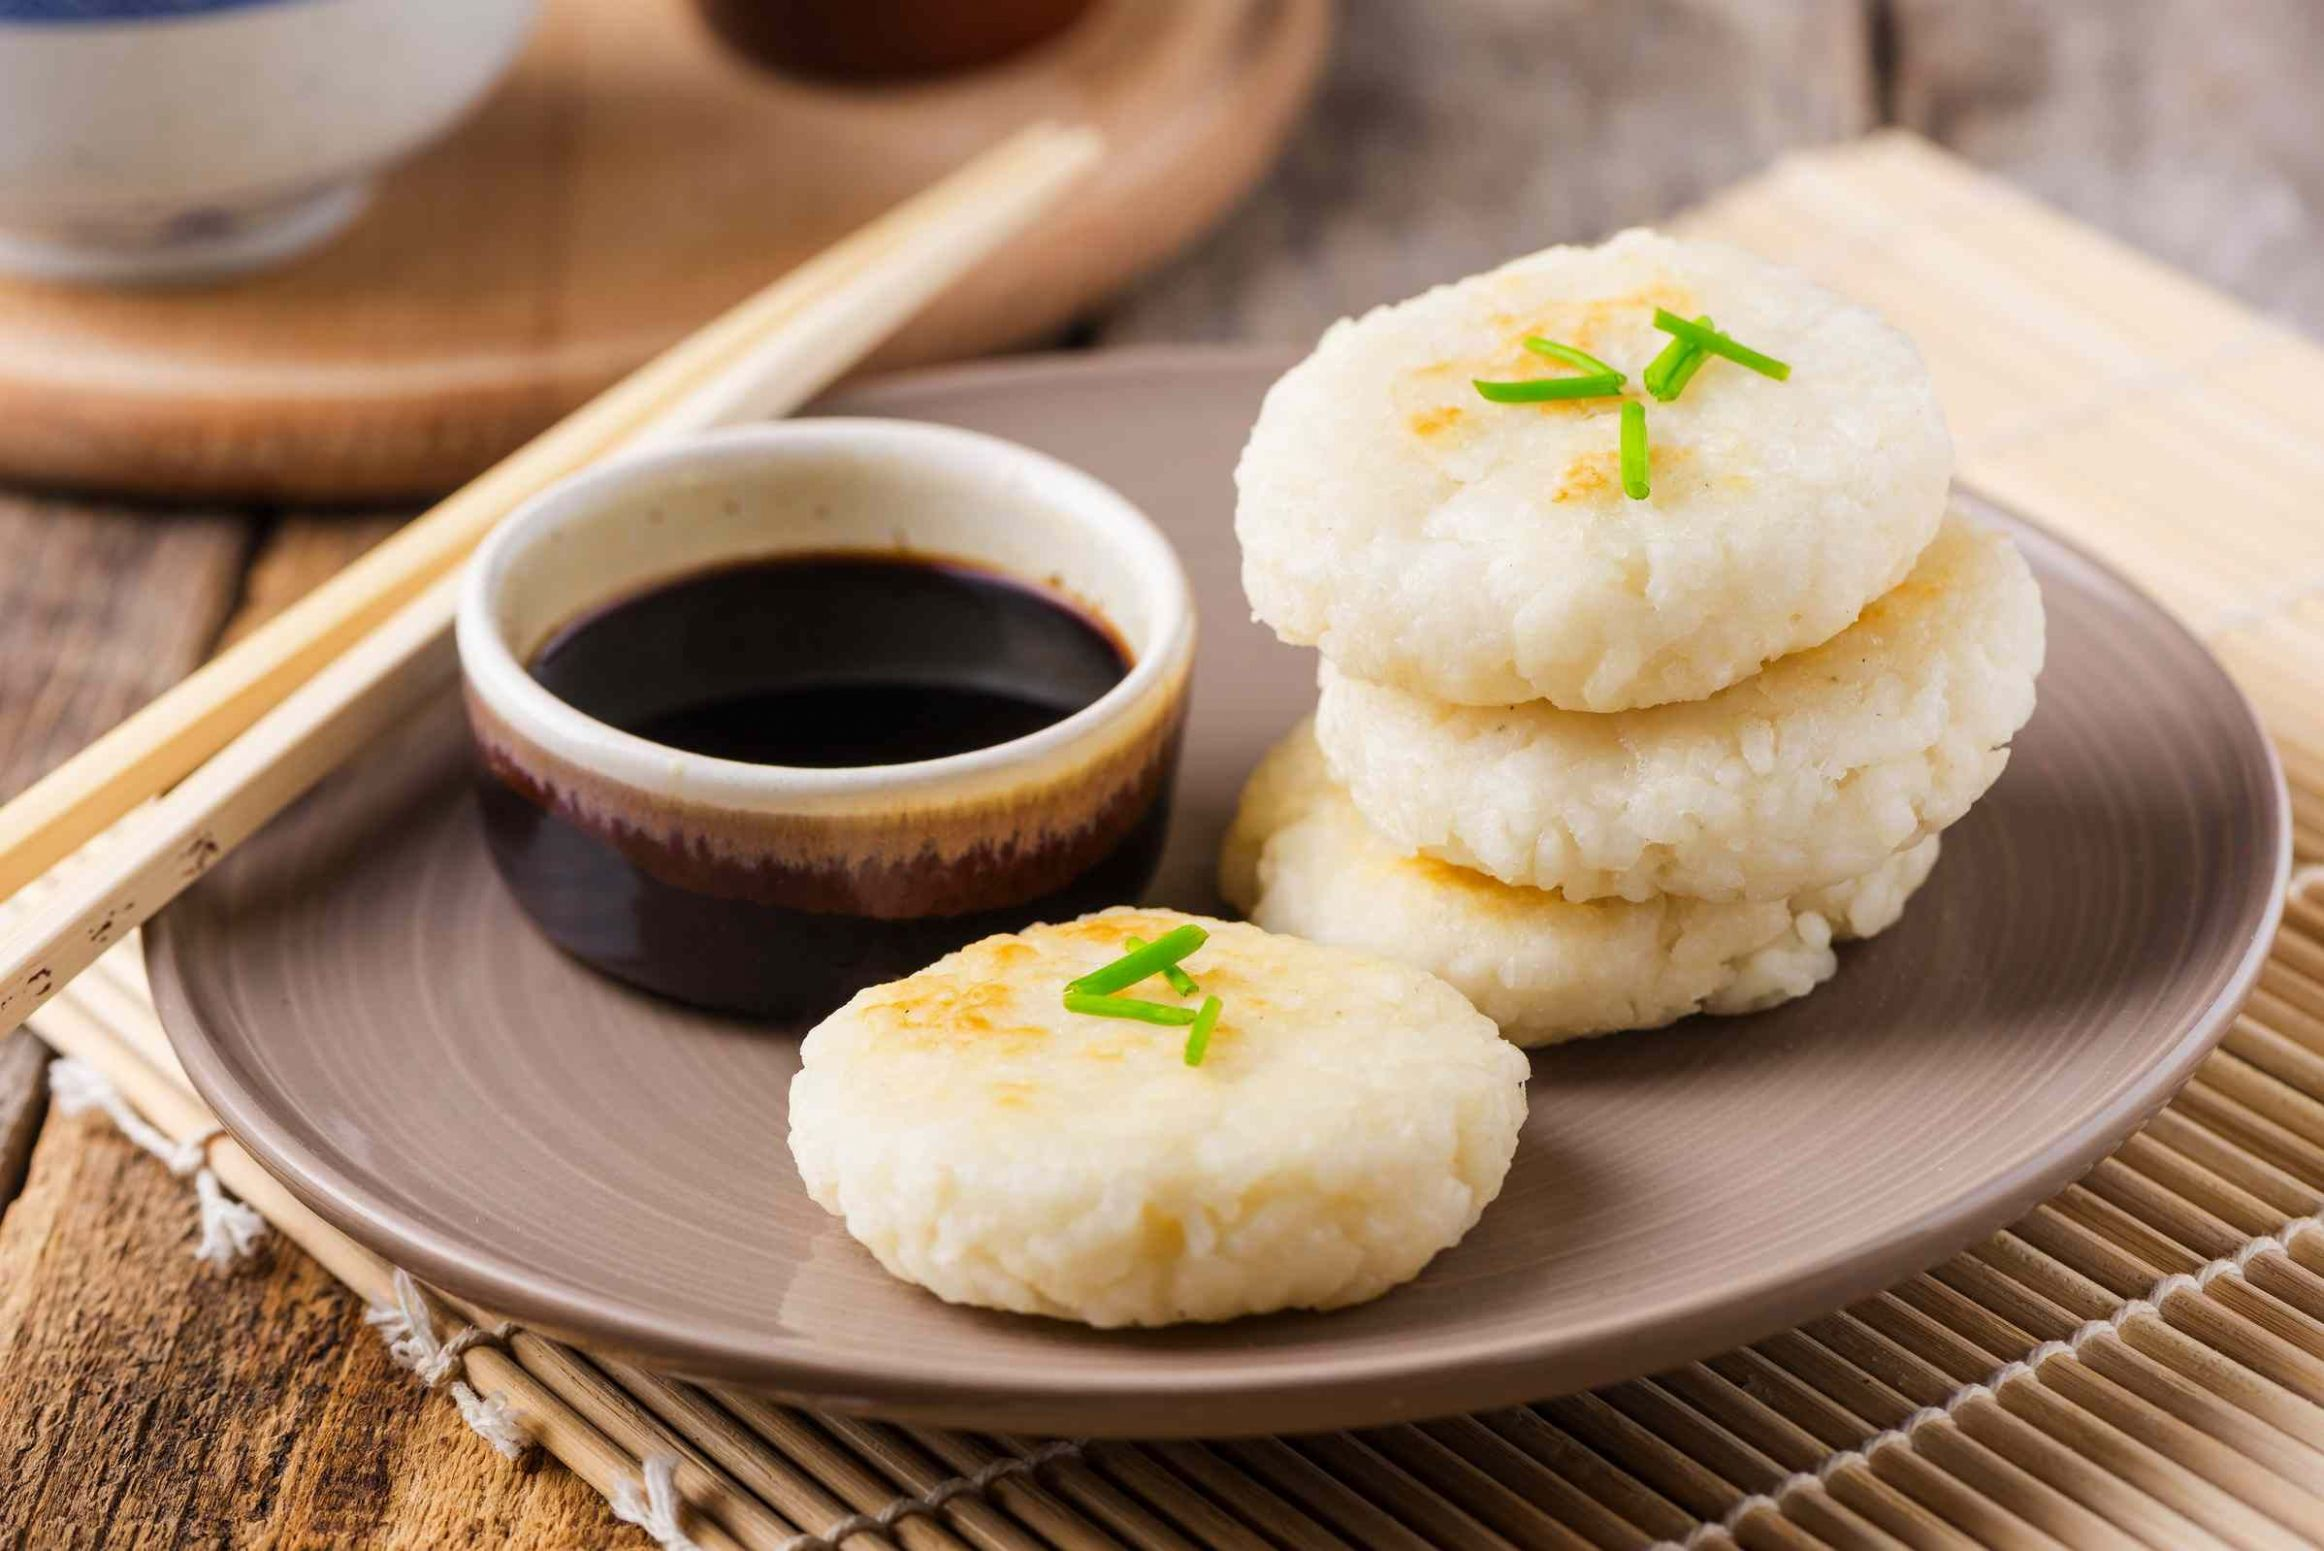 Japanese Pan-Fried Rice Cakes - Recipes Rice Cakes